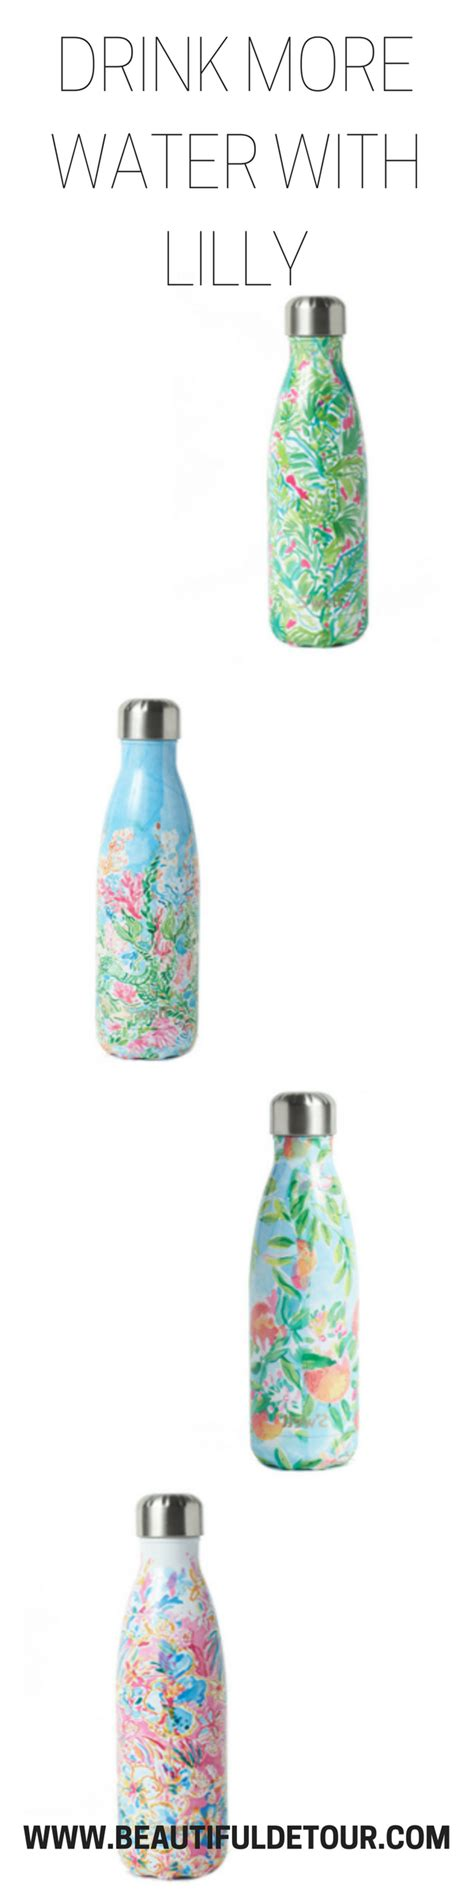 lilly pulitzer starbucks swell bottle tone it up tuesday starbucks lilly pulitzer swell bottle